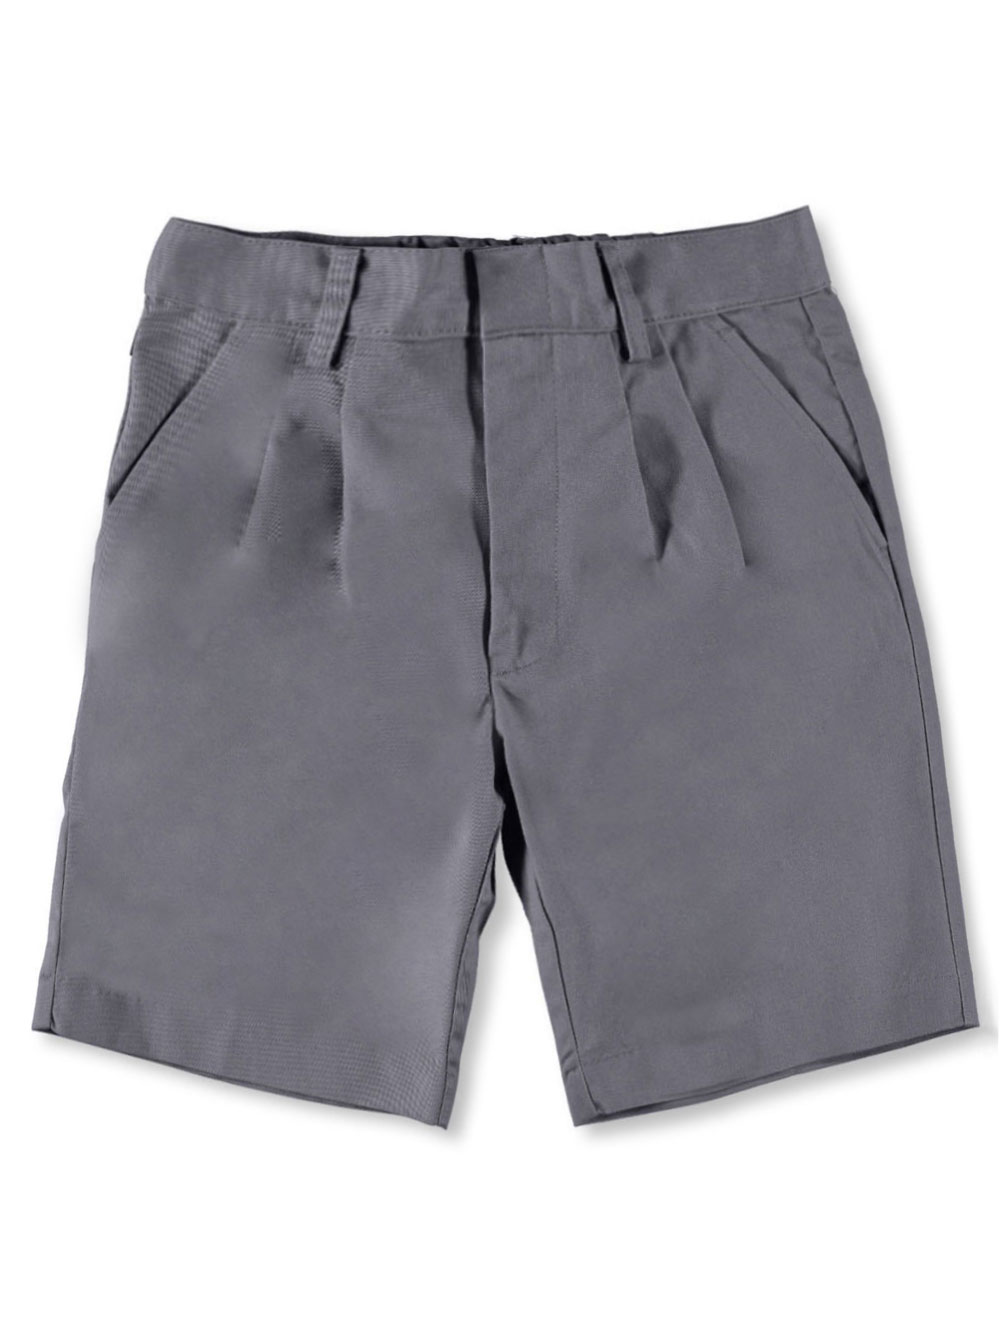 Universal School Uniforms Shorts/Skorts